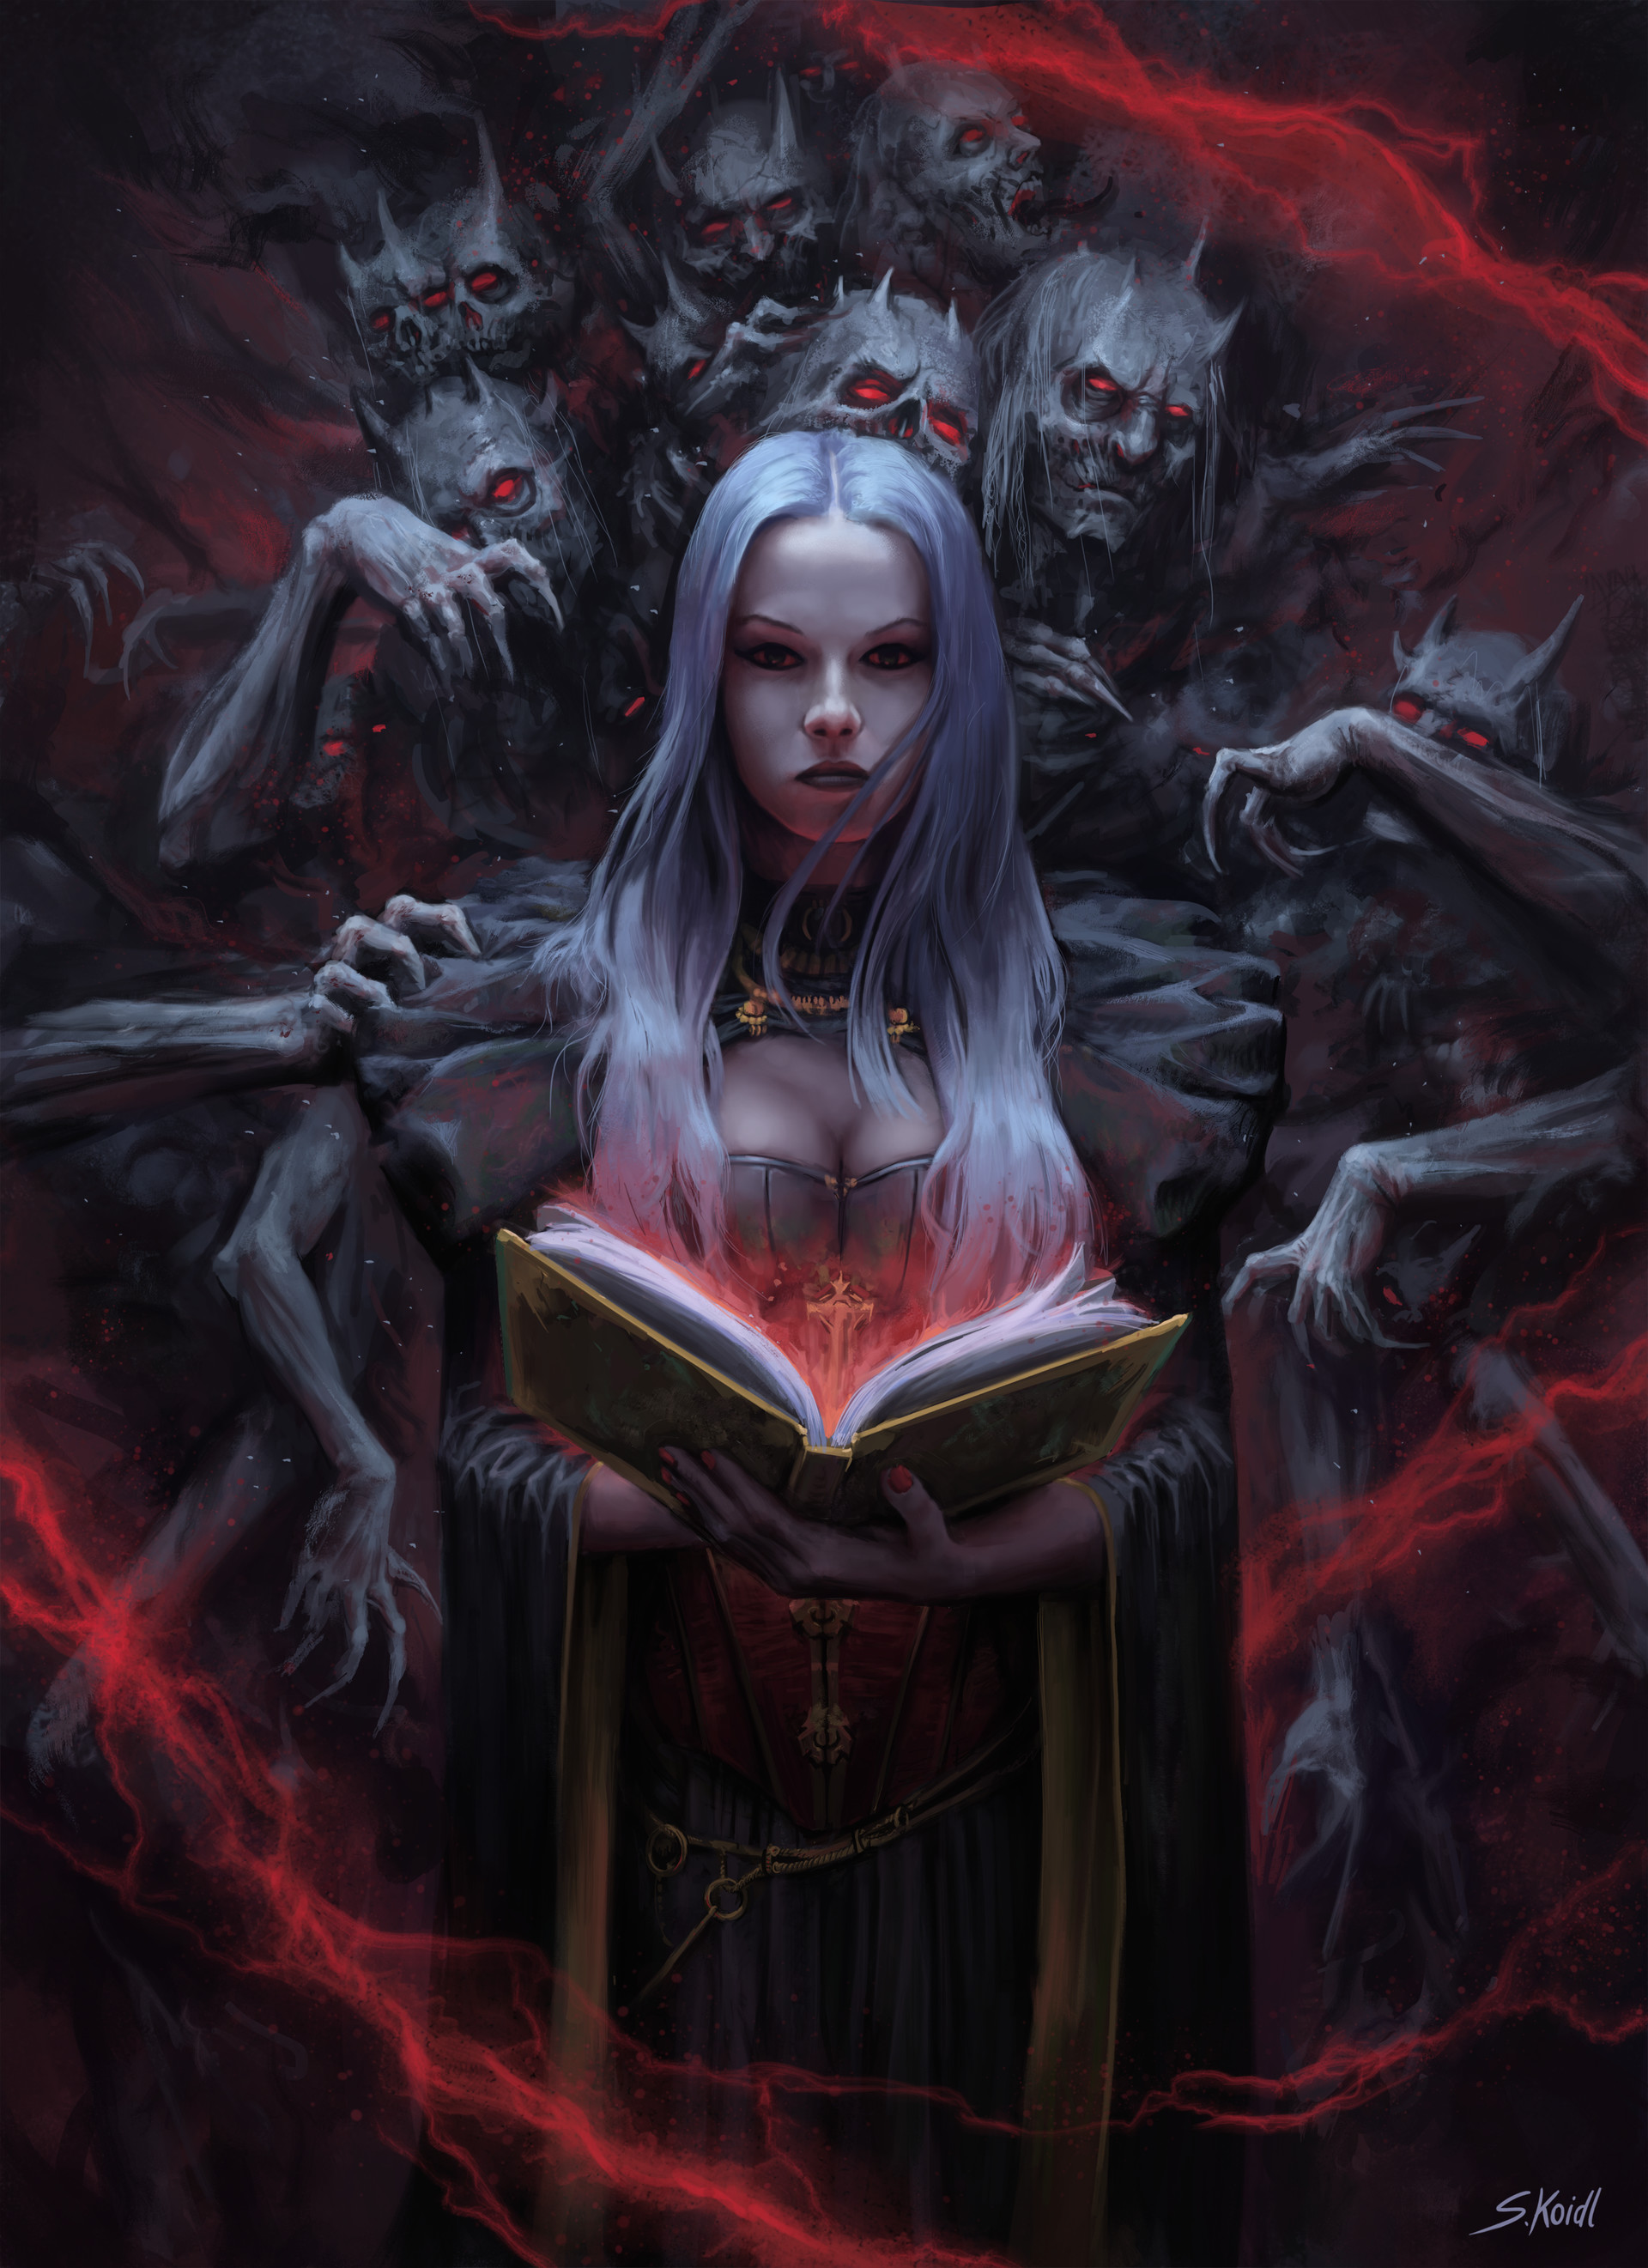 stefan-koidl-demon-girl.jpg